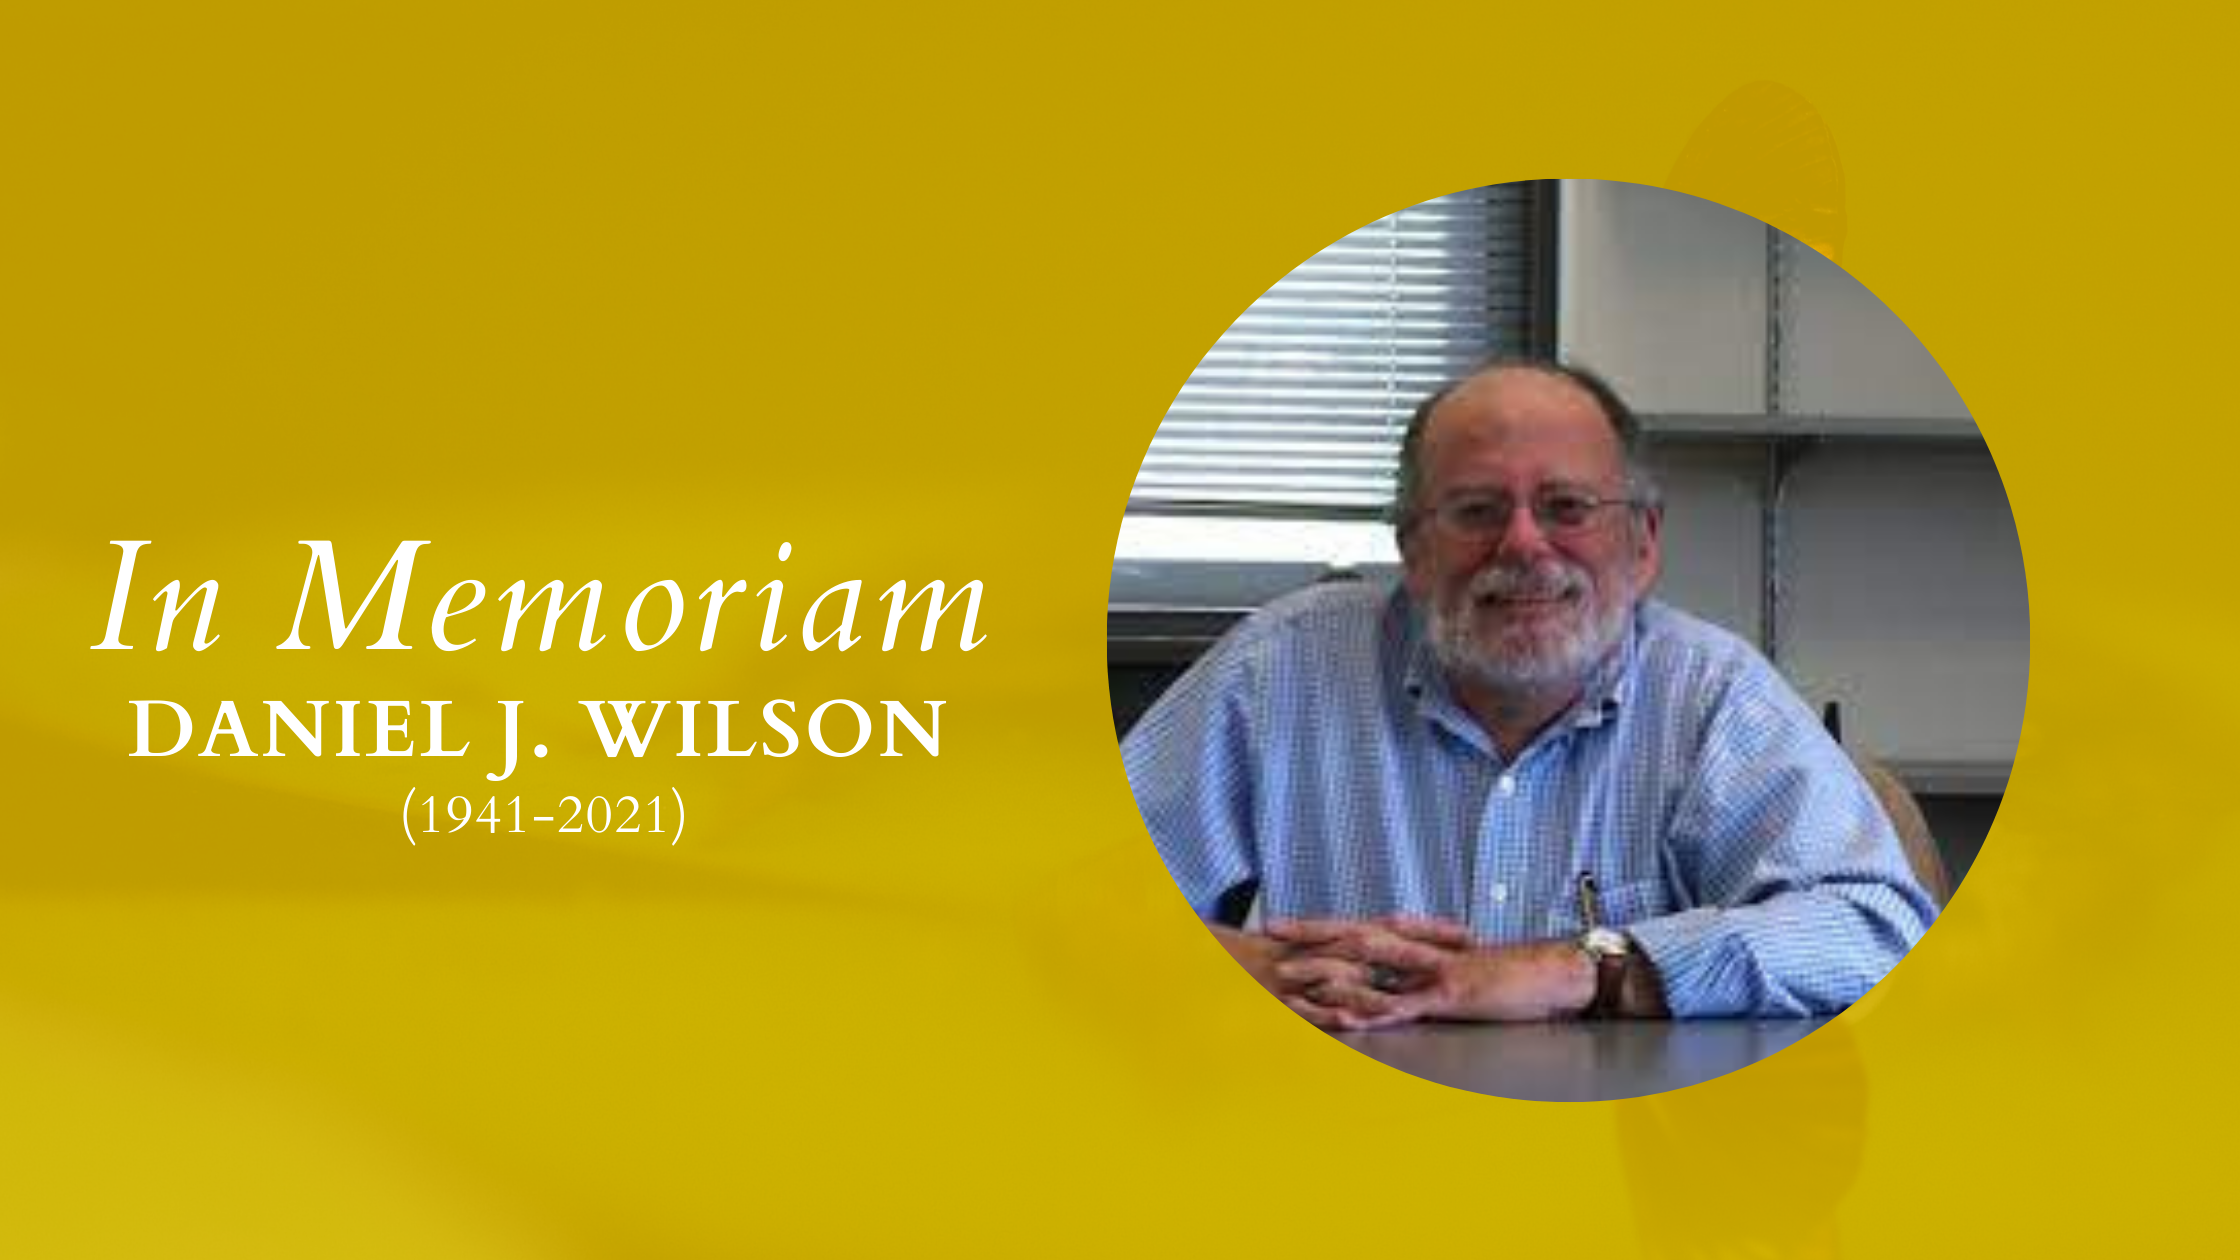 """A header banner with yellow graphic on the left, upon which white text is placed: """"In Memoriam Daniel J. Wilson (1941-2021)"""" On the right is a photograph of Dan, a bespectacled white man with white hair and beard. He is wearing a blue collared shirt, siting at a desk with his hands resting and interlocked, and smiling."""